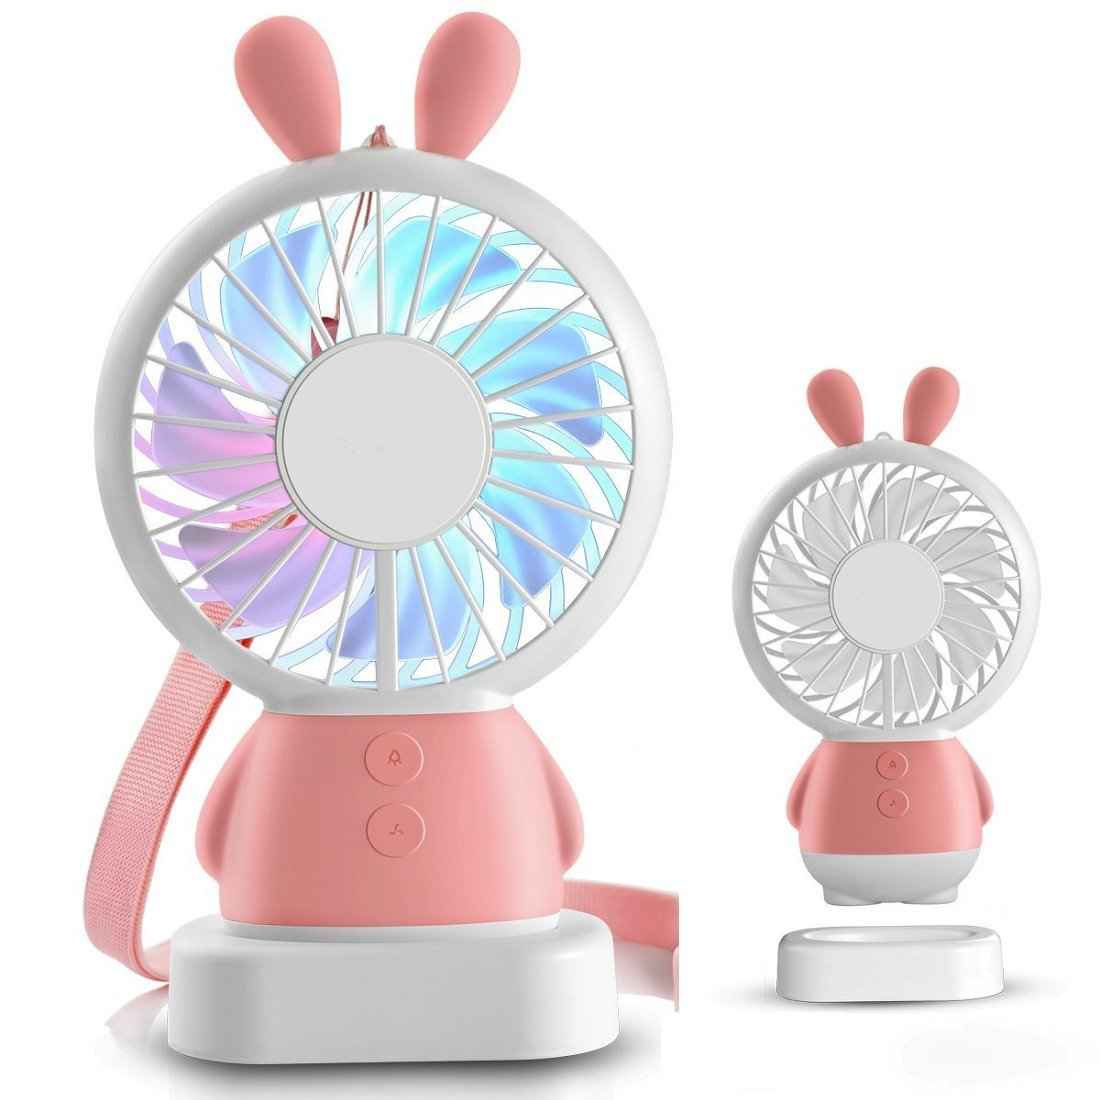 Alibuy Mini Handheld Table Fan USB Rechargeable Quiet Desk Fans,Battery Operated 2 Speeds with LED Colorful Lights for Hot Summer Pink